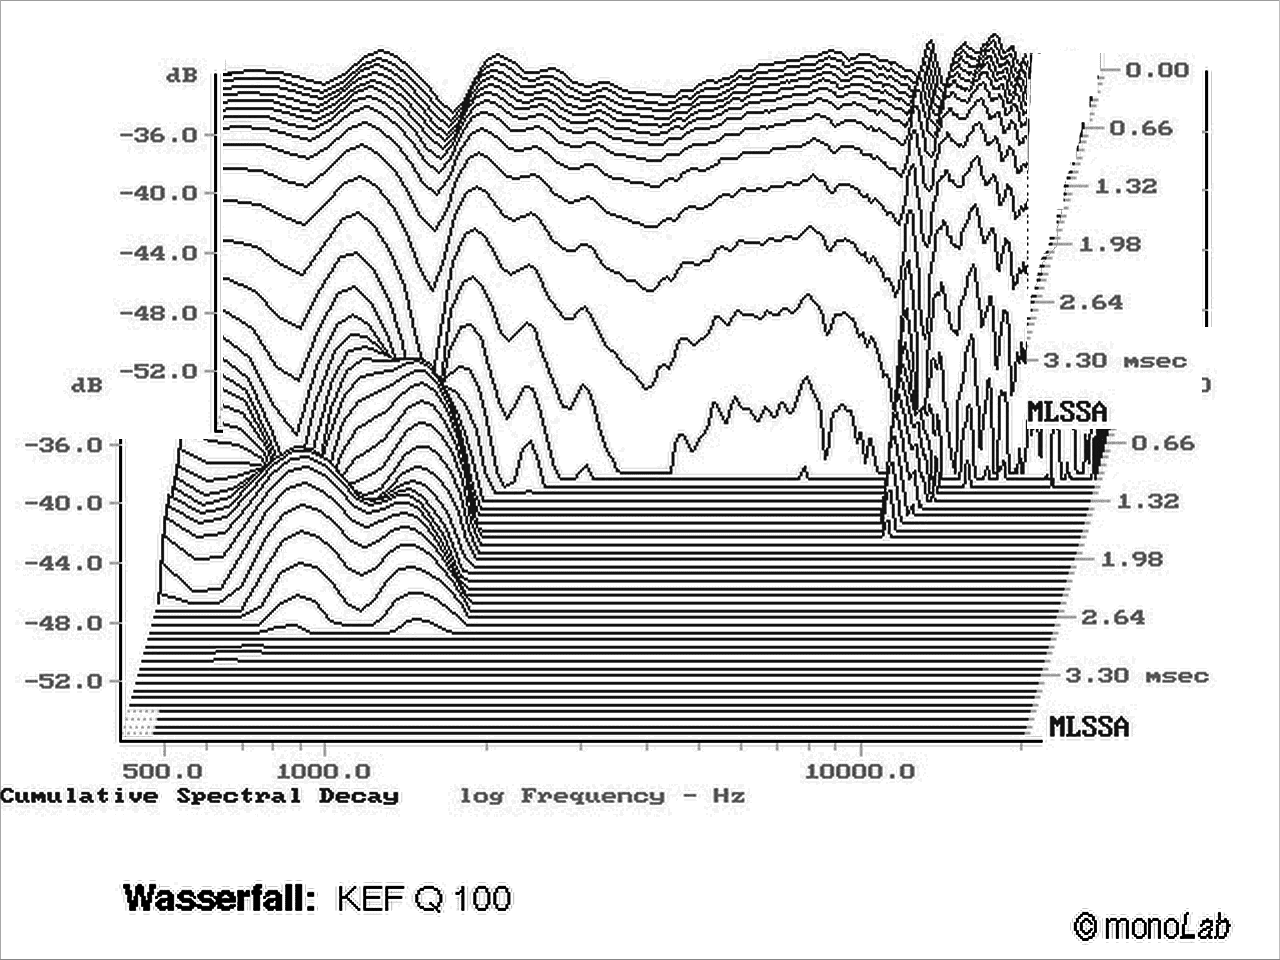 KEF_Q_100_Wasserfall-x2-scale-grey.png